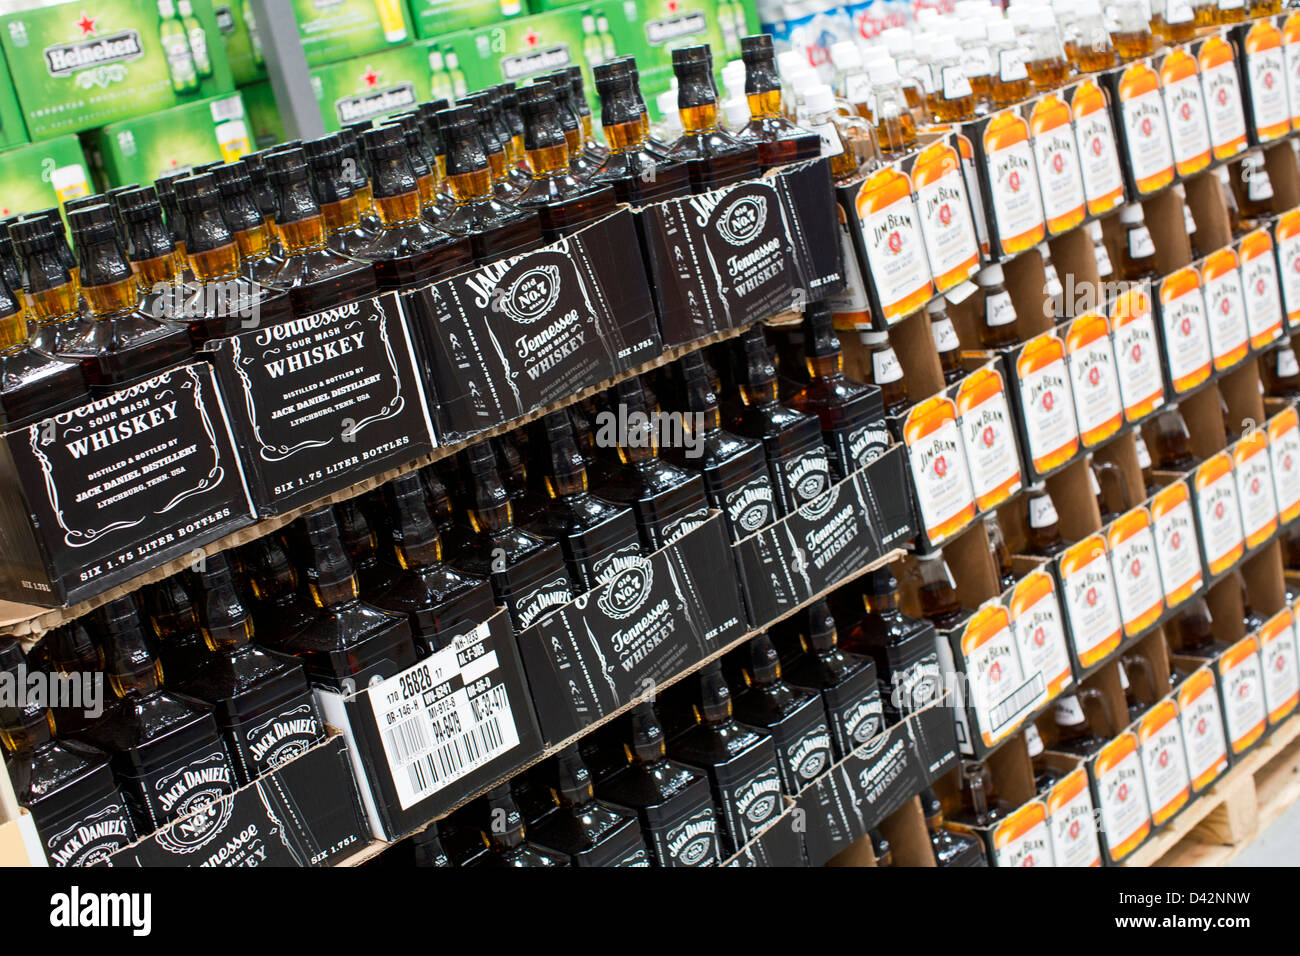 Jack Daniel's whiskey on display at a Costco Wholesale Warehouse Club. Stock Photo